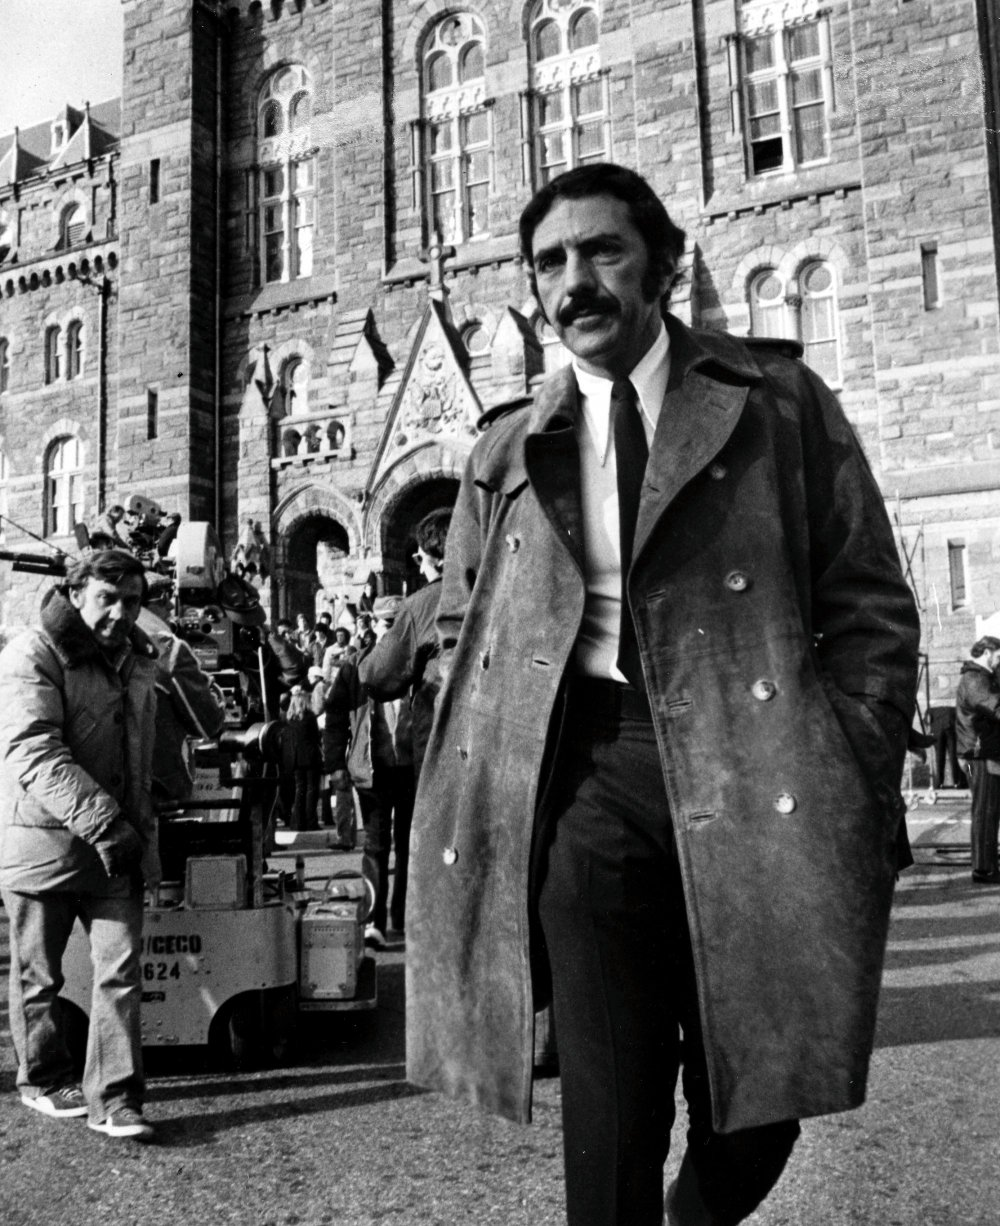 William Peter Blatty on the Georgetown University location of The Exorcist (1973)